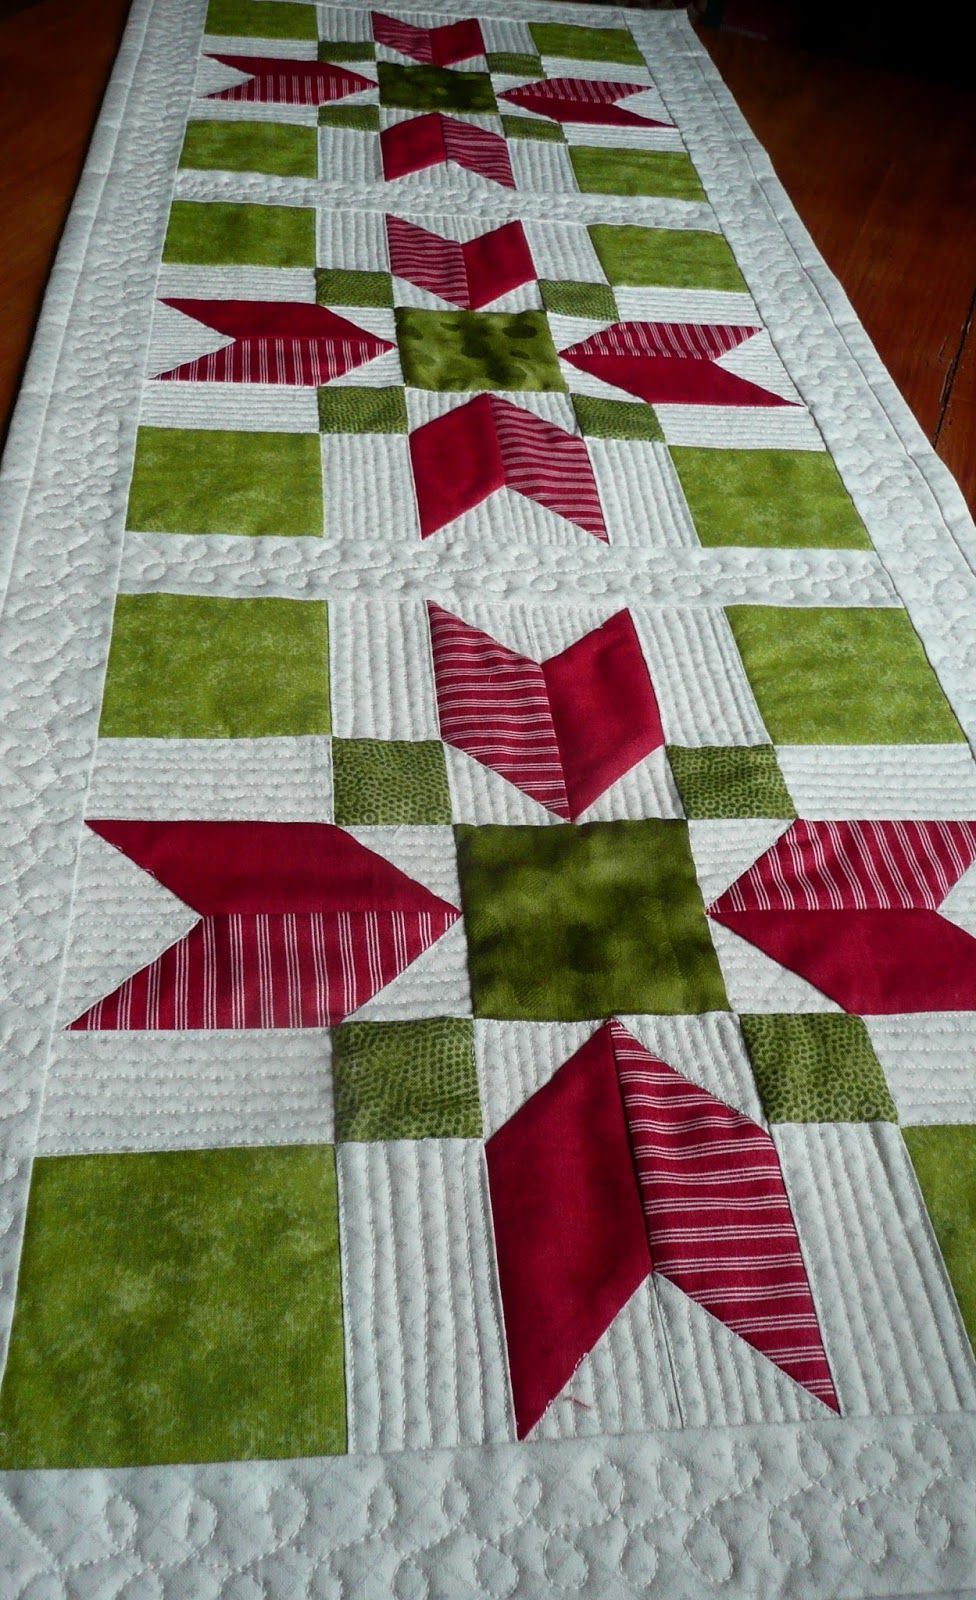 P1100021 Jpg 976 1600 Quilted Table Runners Patterns Quilts Quilted Table Toppers